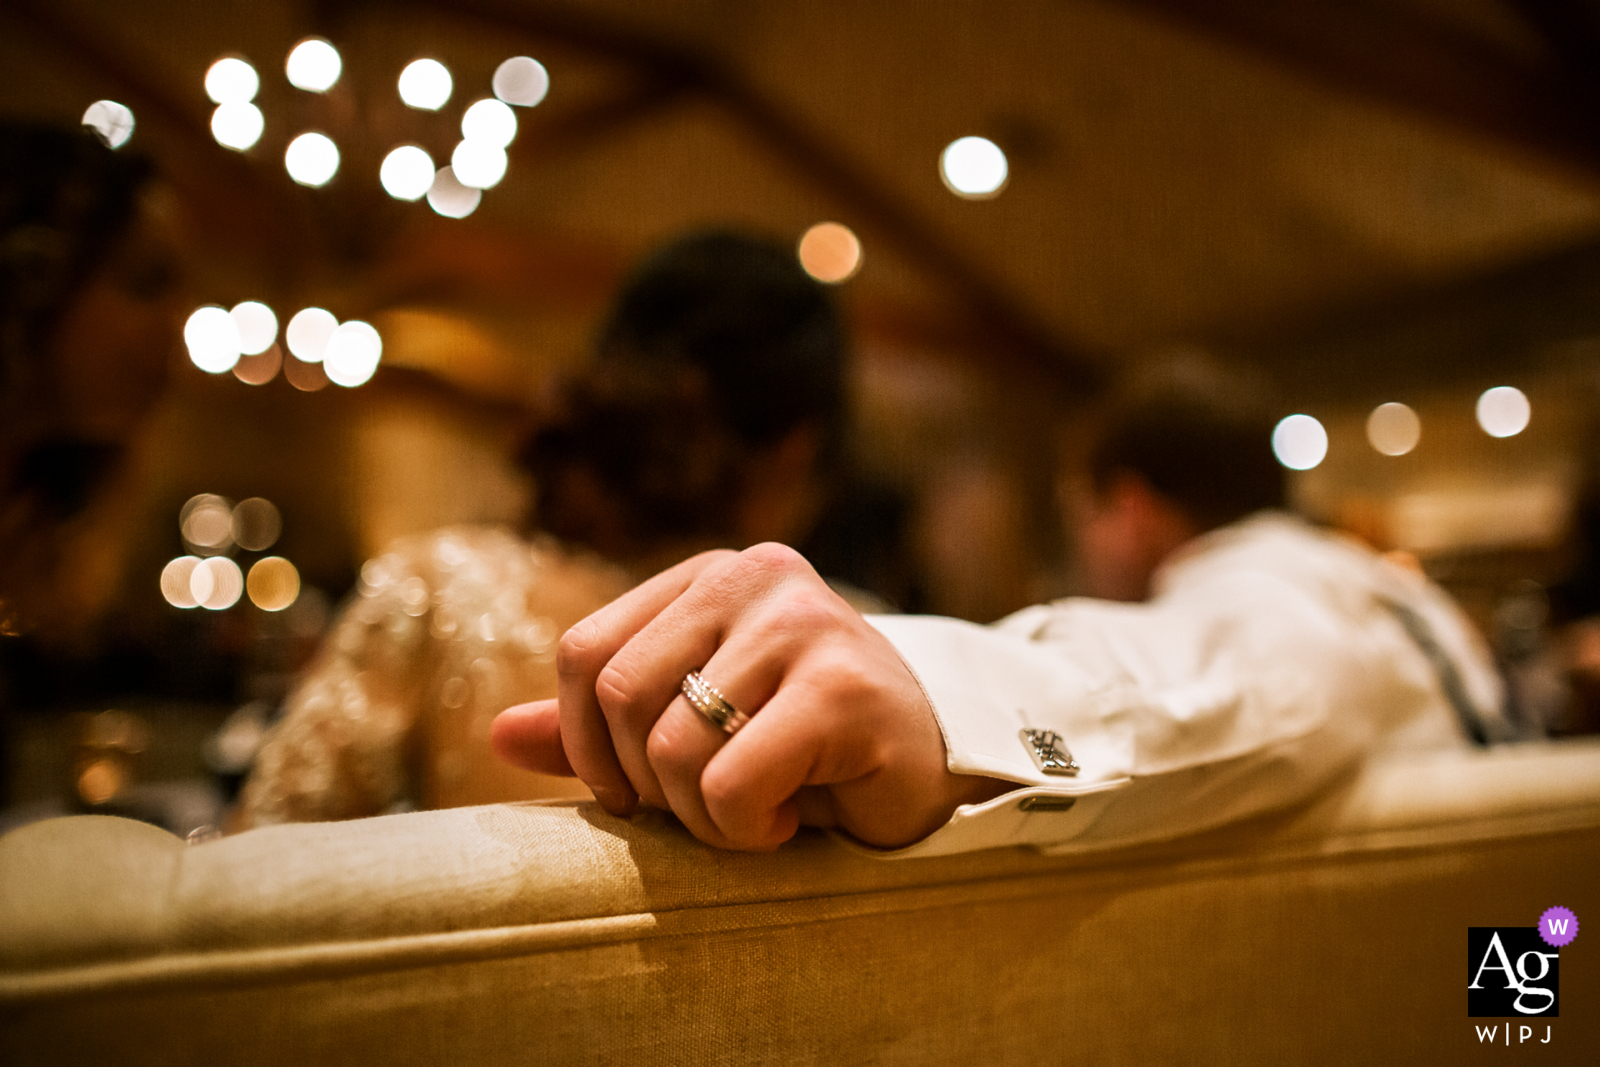 Artistic wedding photo from California, Napa - Finally a relaxing time for the newlywed